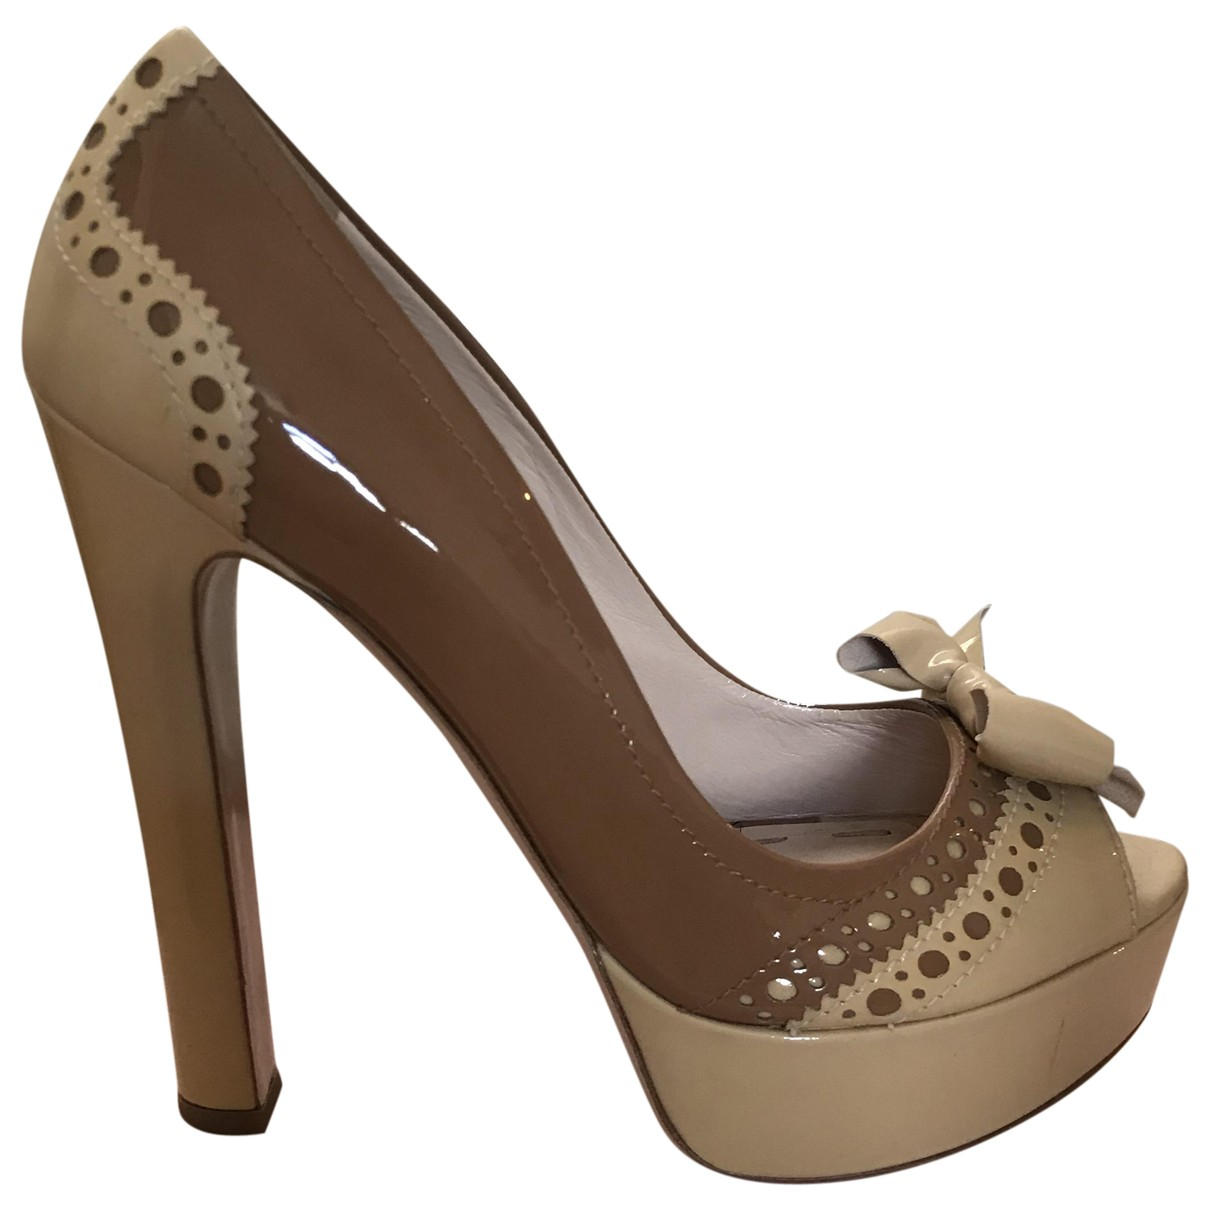 Miu Miu \N Beige Patent leather Heels for Women 40 EU